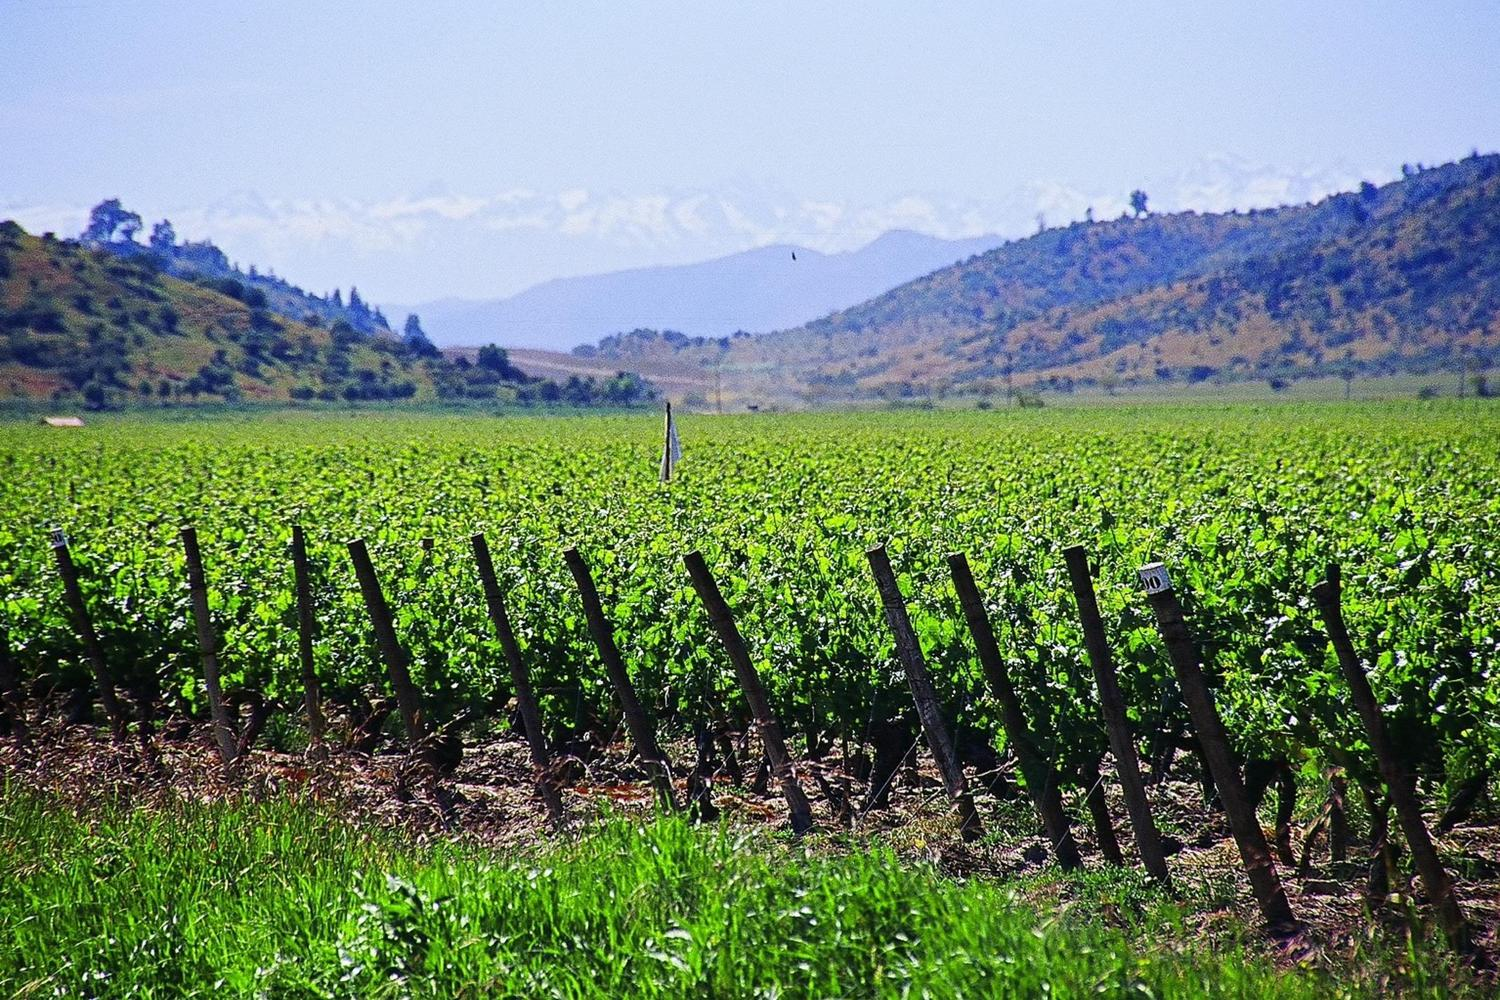 Looking out from Colchagua Valley's vineyards towards the Andes